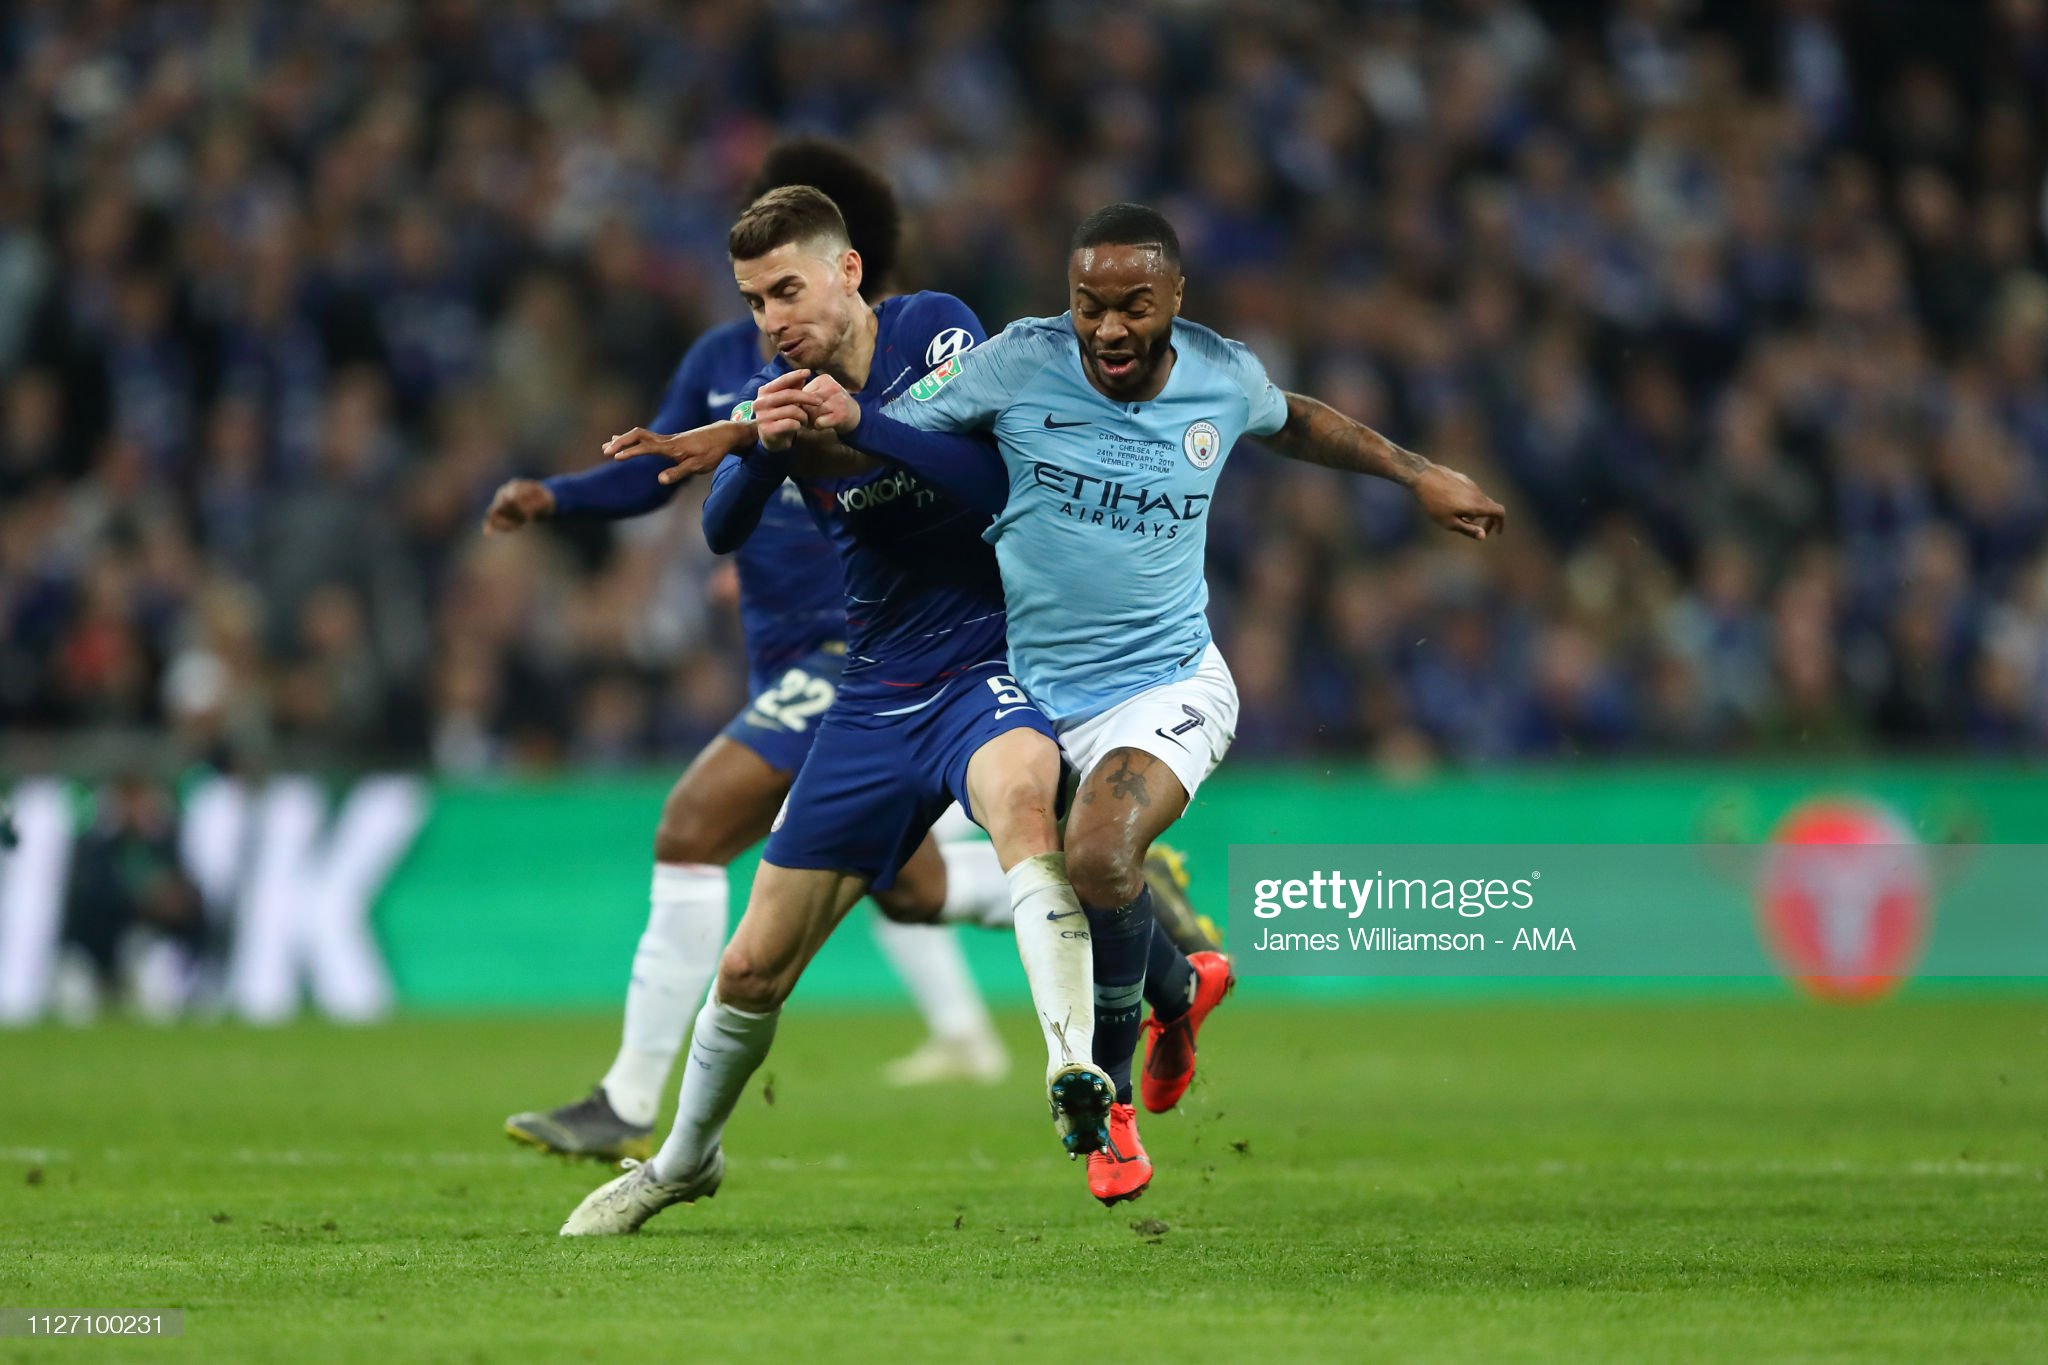 Chelsea vs Manchester City preview, prediction and odds